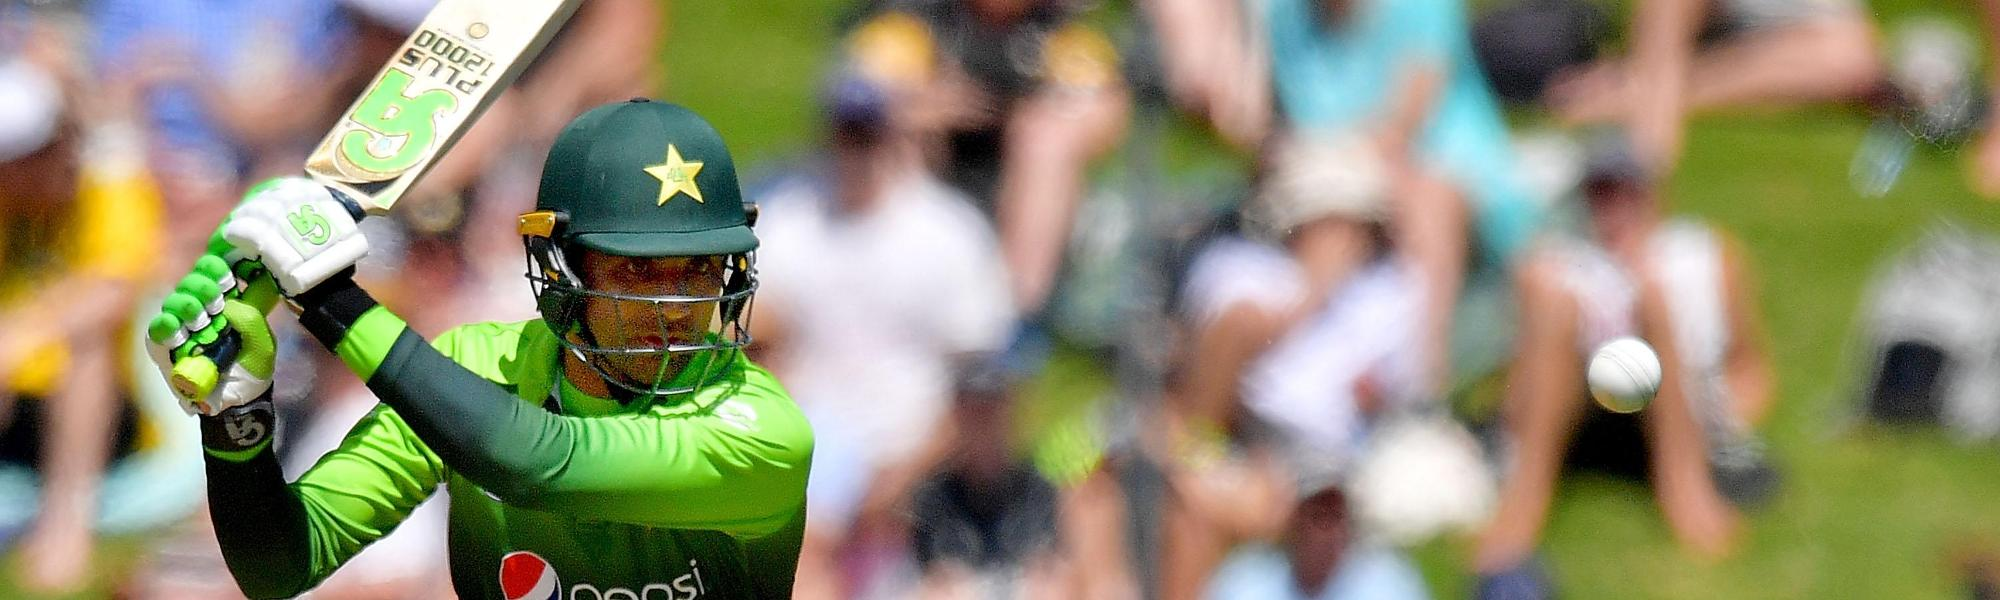 Fakhar Zaman sees CWC 2019 favourites tag sitting well on Pakistan